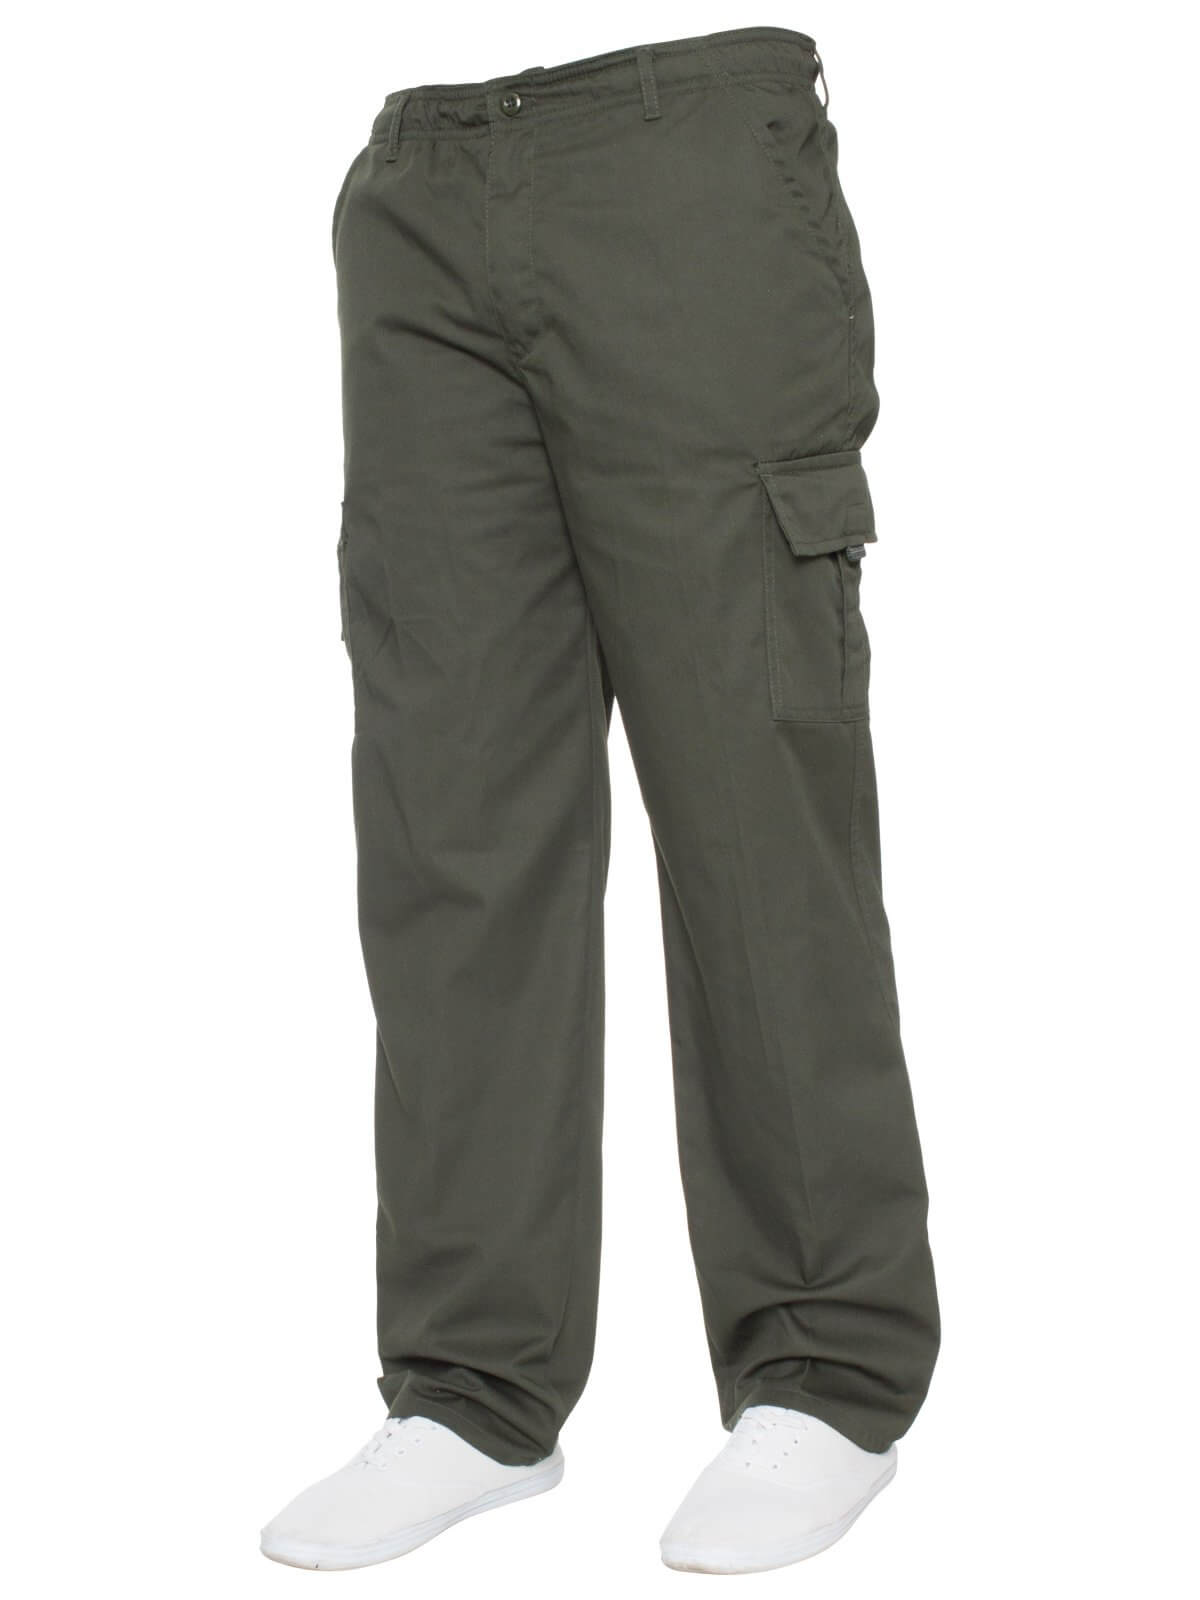 Kruze | Mens Elasticated Designer Cargo Combat Chino Trousers